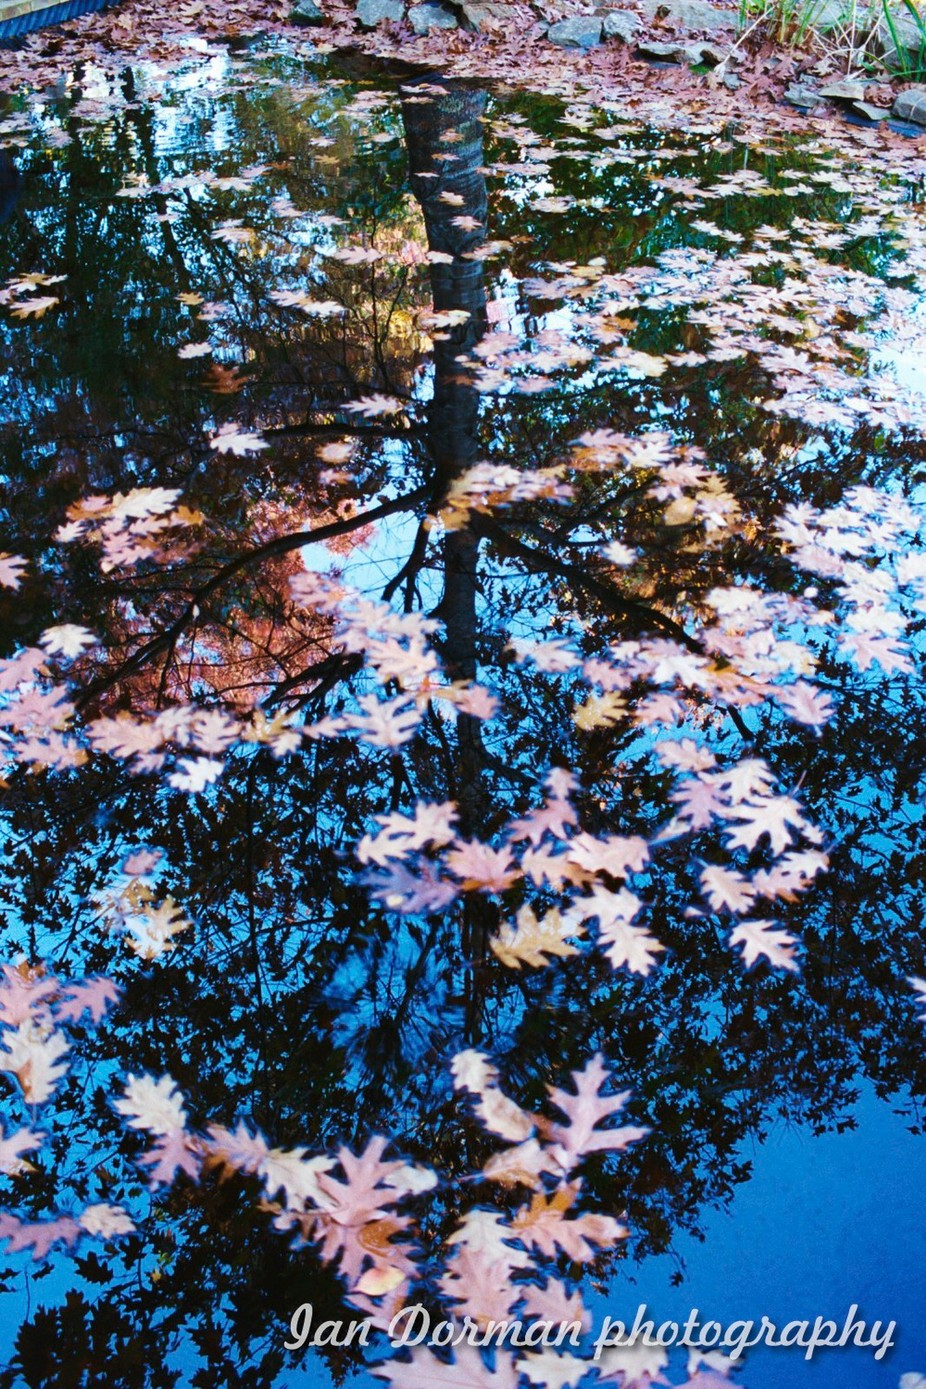 The water was so black with tannin and the sun was in just the right angle to reflect the image of the tree against the blue of the shy. And then autumn leaves floating on top of the water